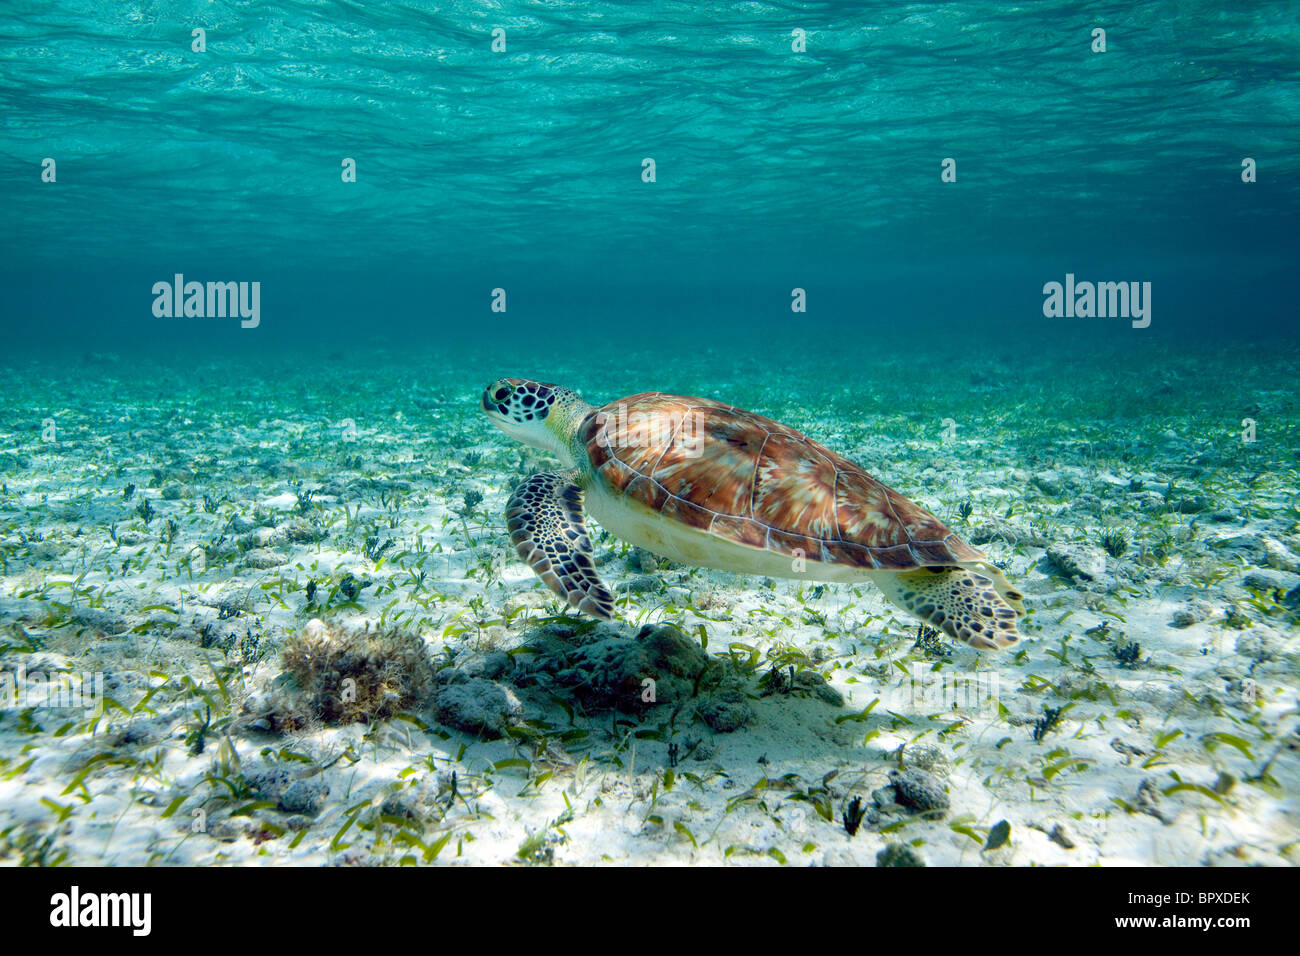 Green Sea Turtle in Belize - Stock Image